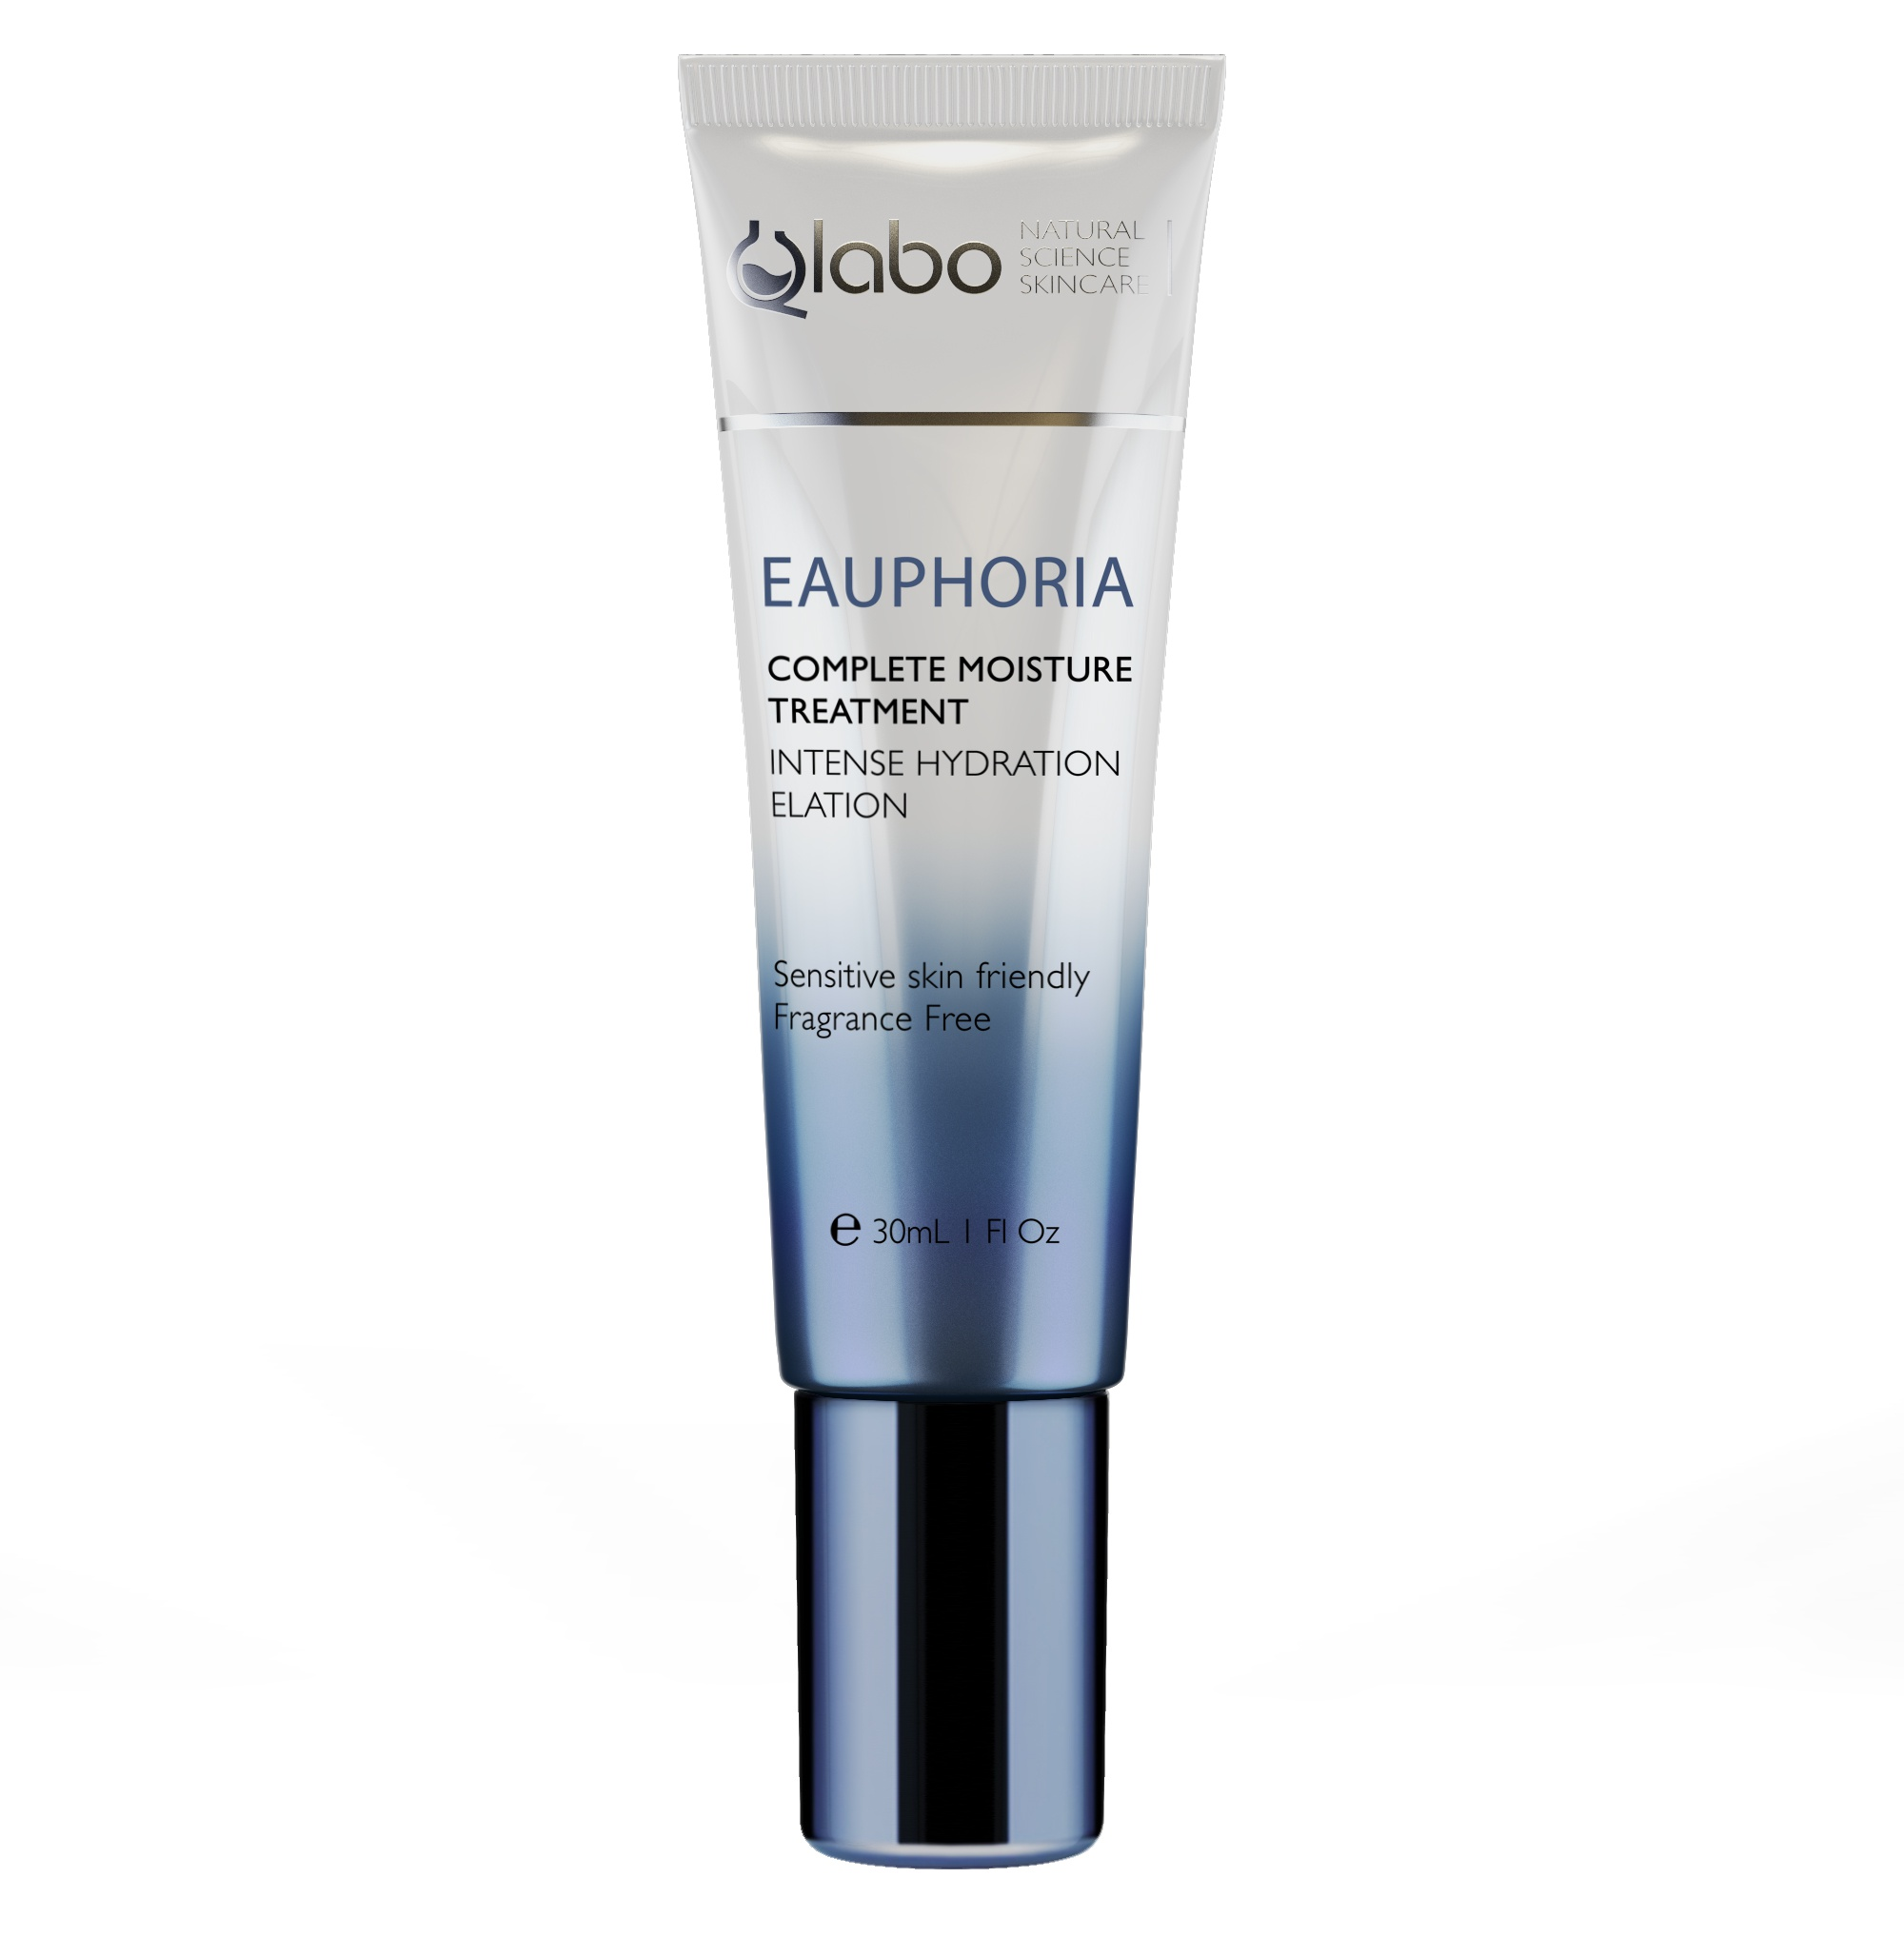 QLABO Eauphoria Complete Moisture Treatment